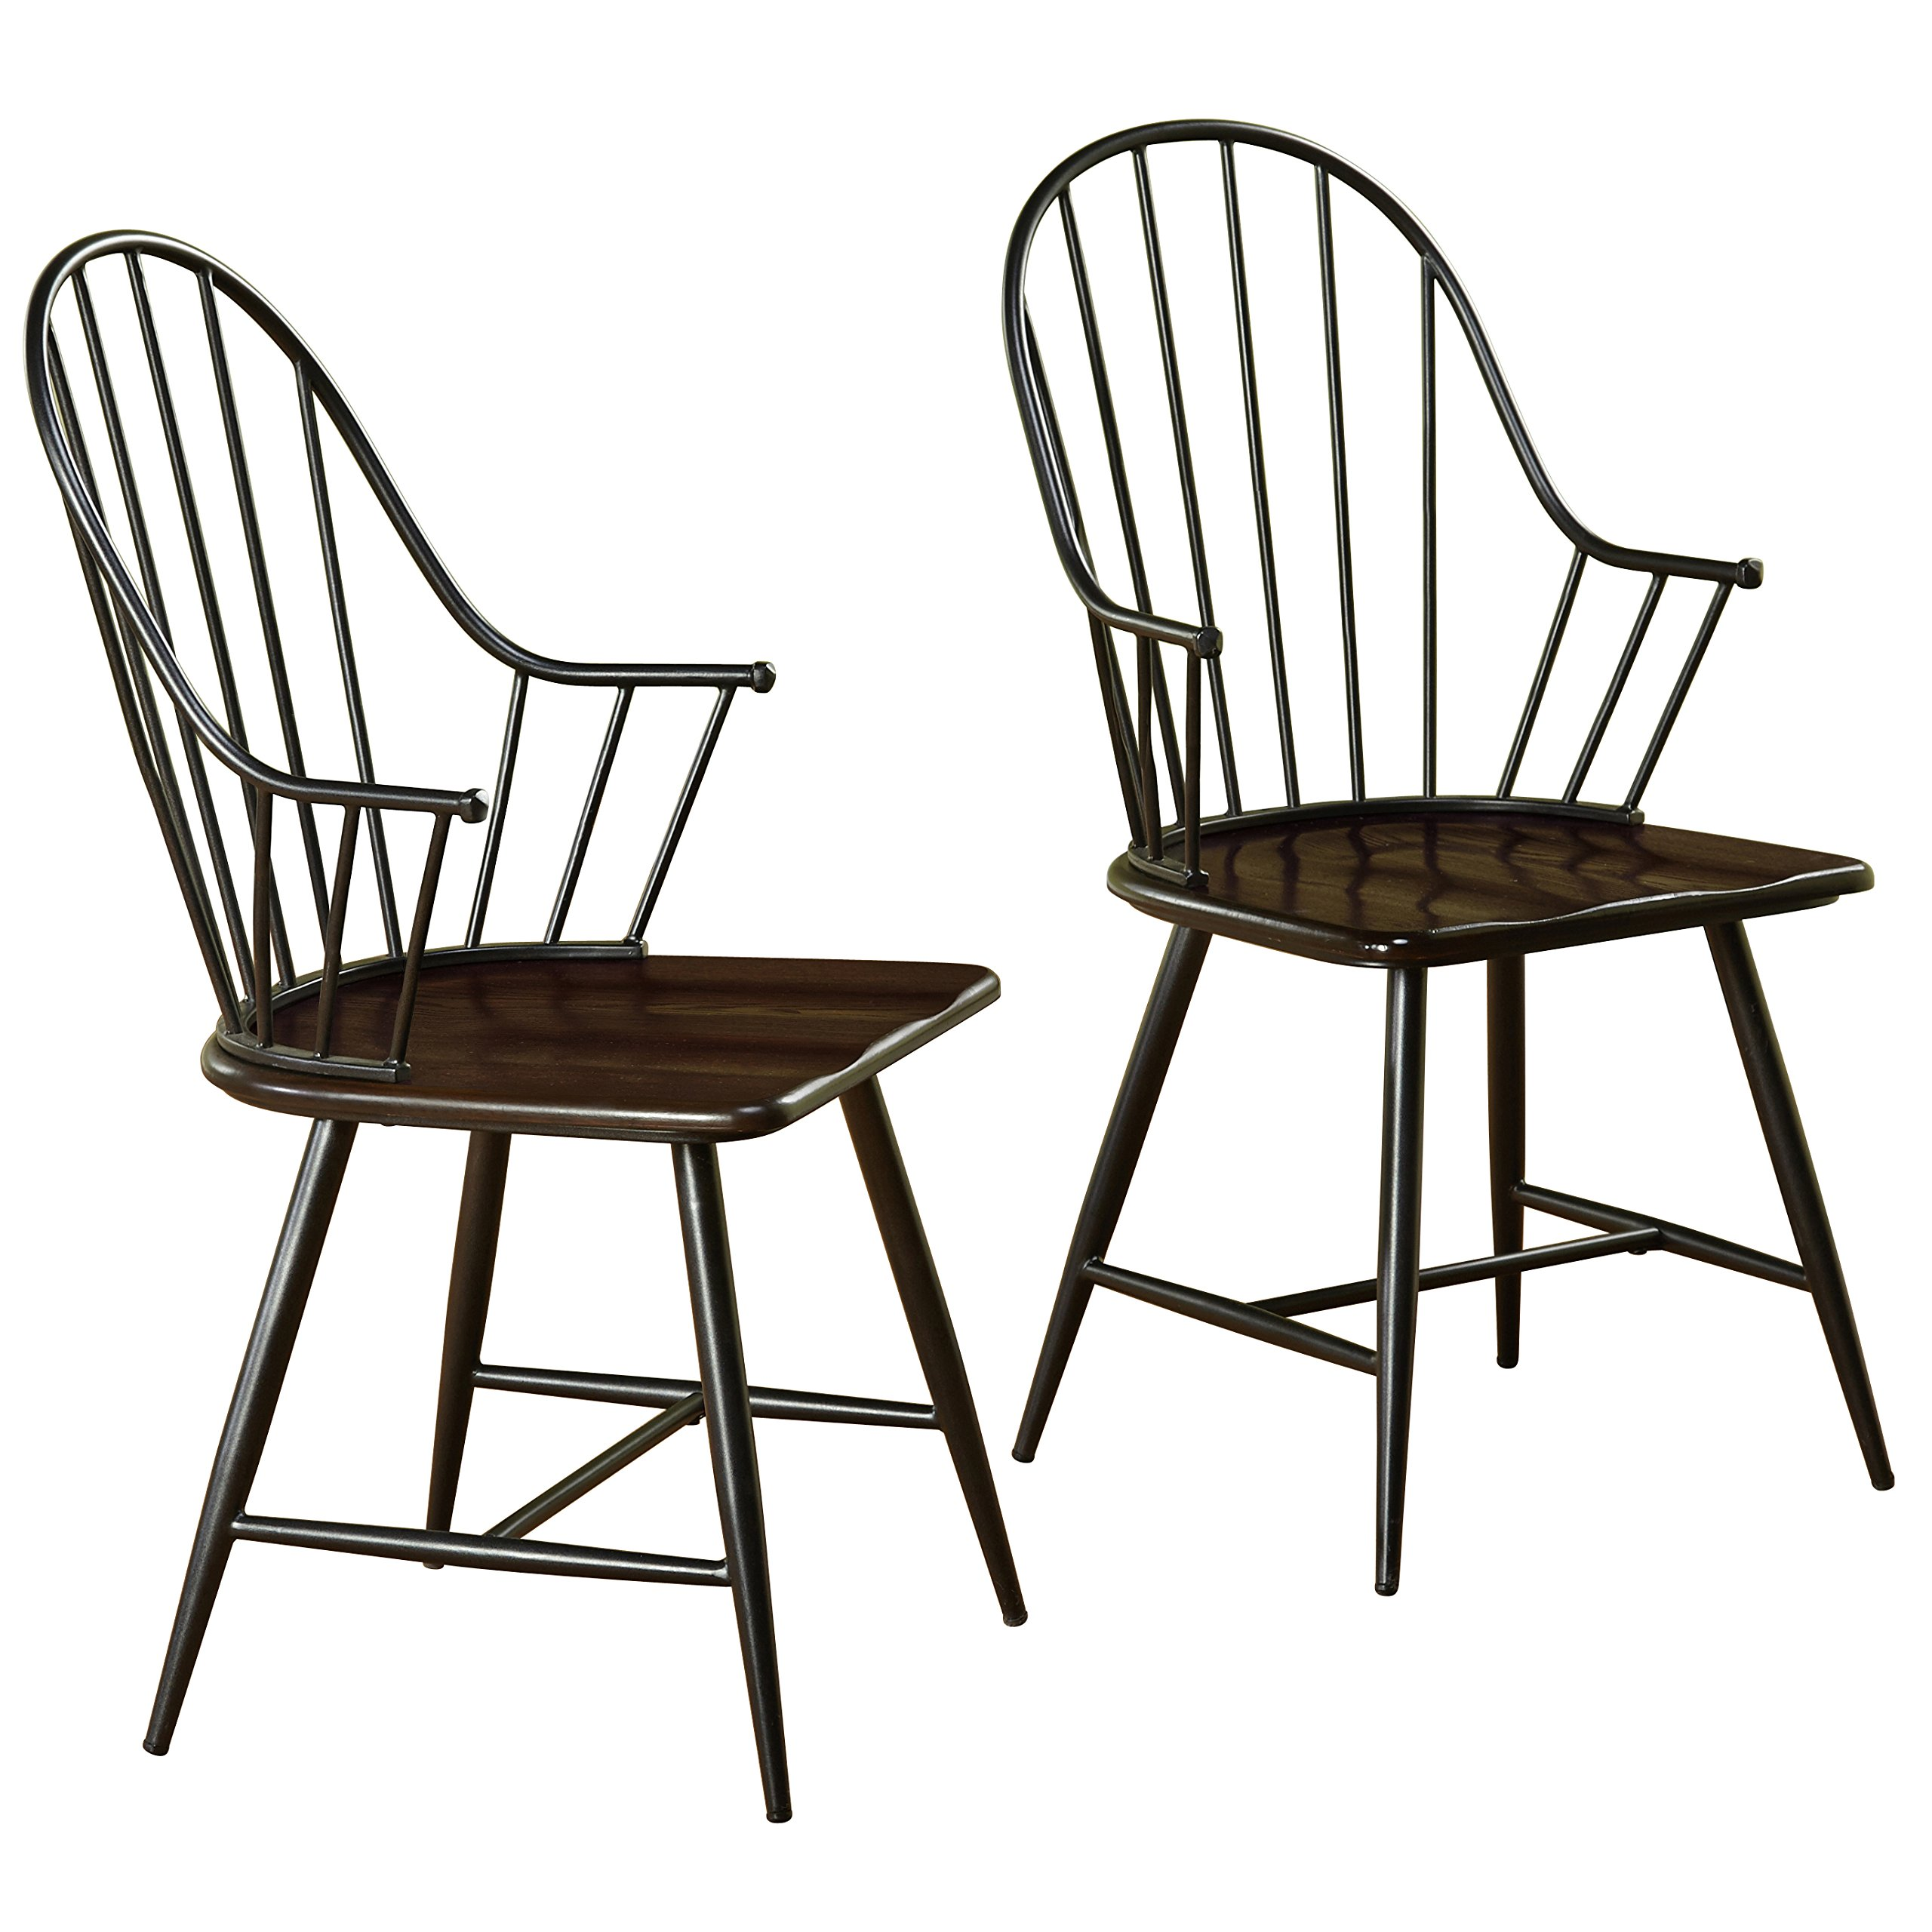 Target Marketing Systems Windsor Set of 2 Farmhouse Inspired Spindle Back Arm Chairs with Saddle Seat, Set of 2, Black/Espresso by Target Marketing Systems